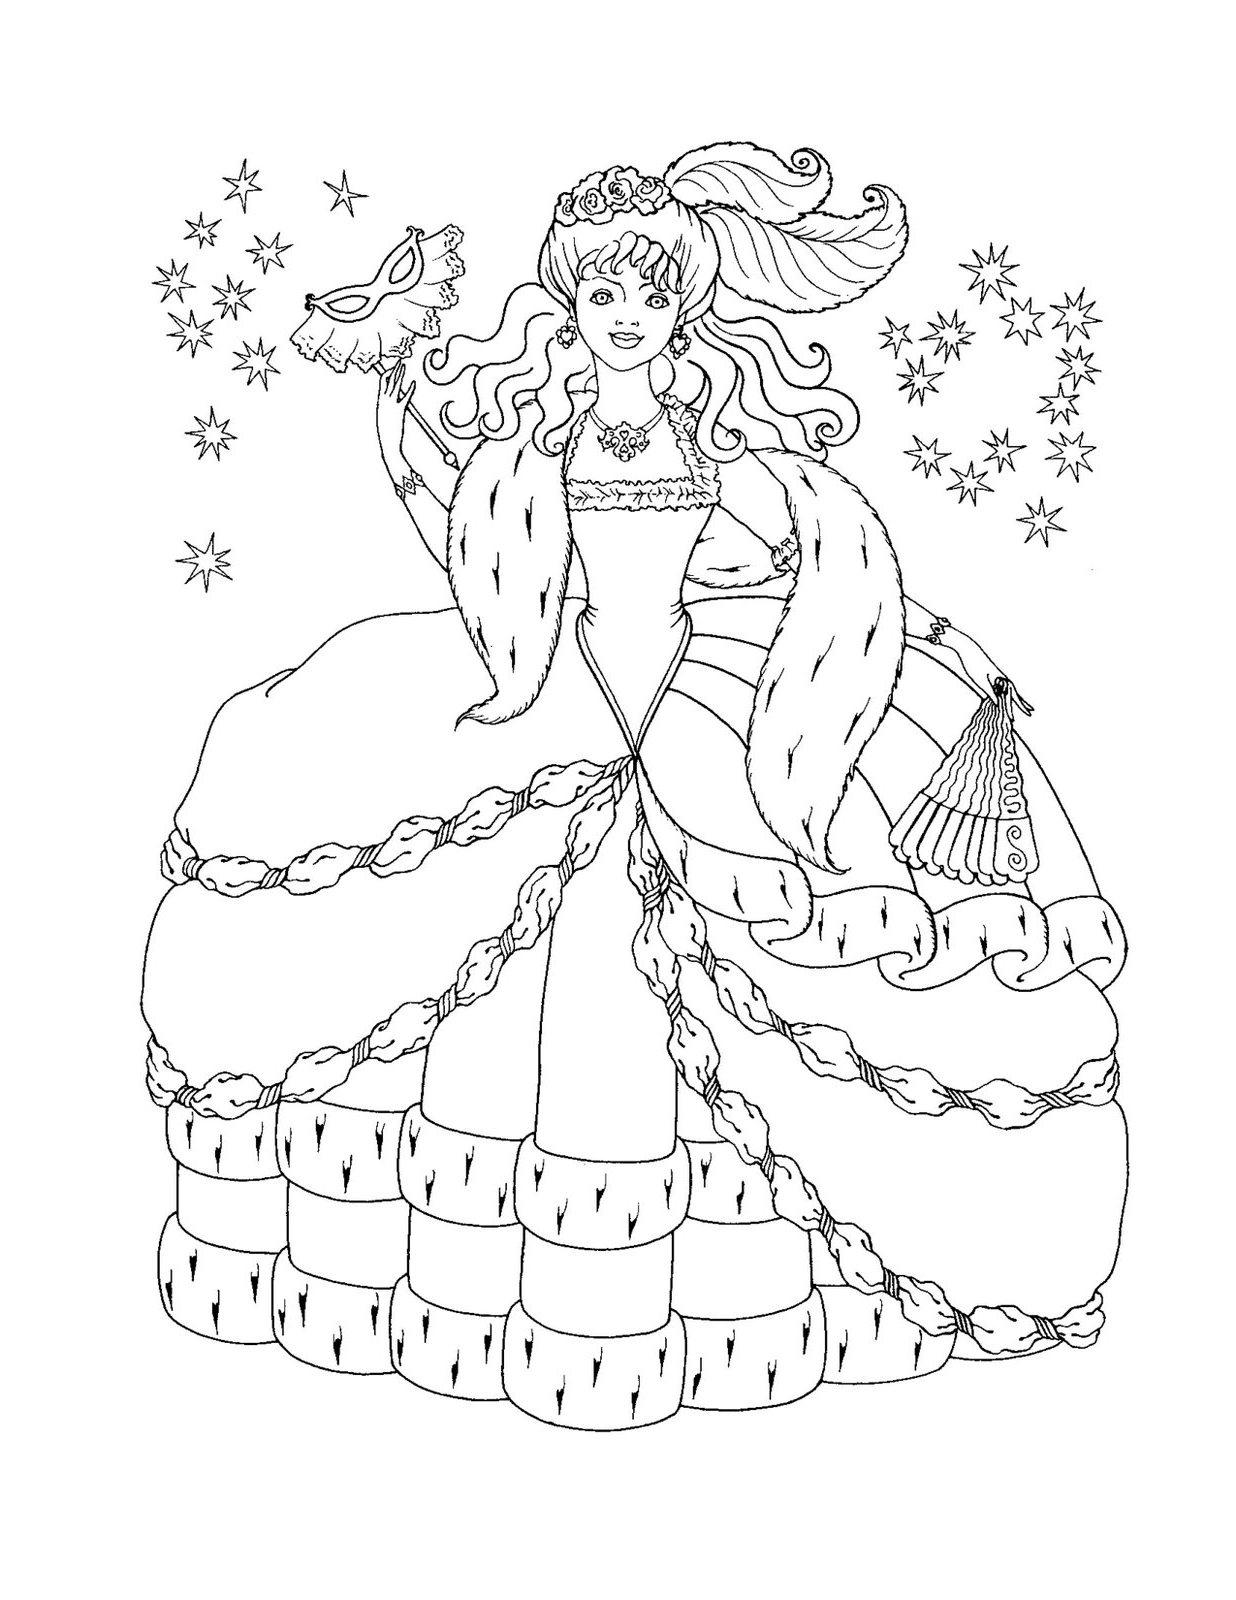 Free Printable Disney Princess Coloring Pages For Kids Free Printable Princess Coloring Pages